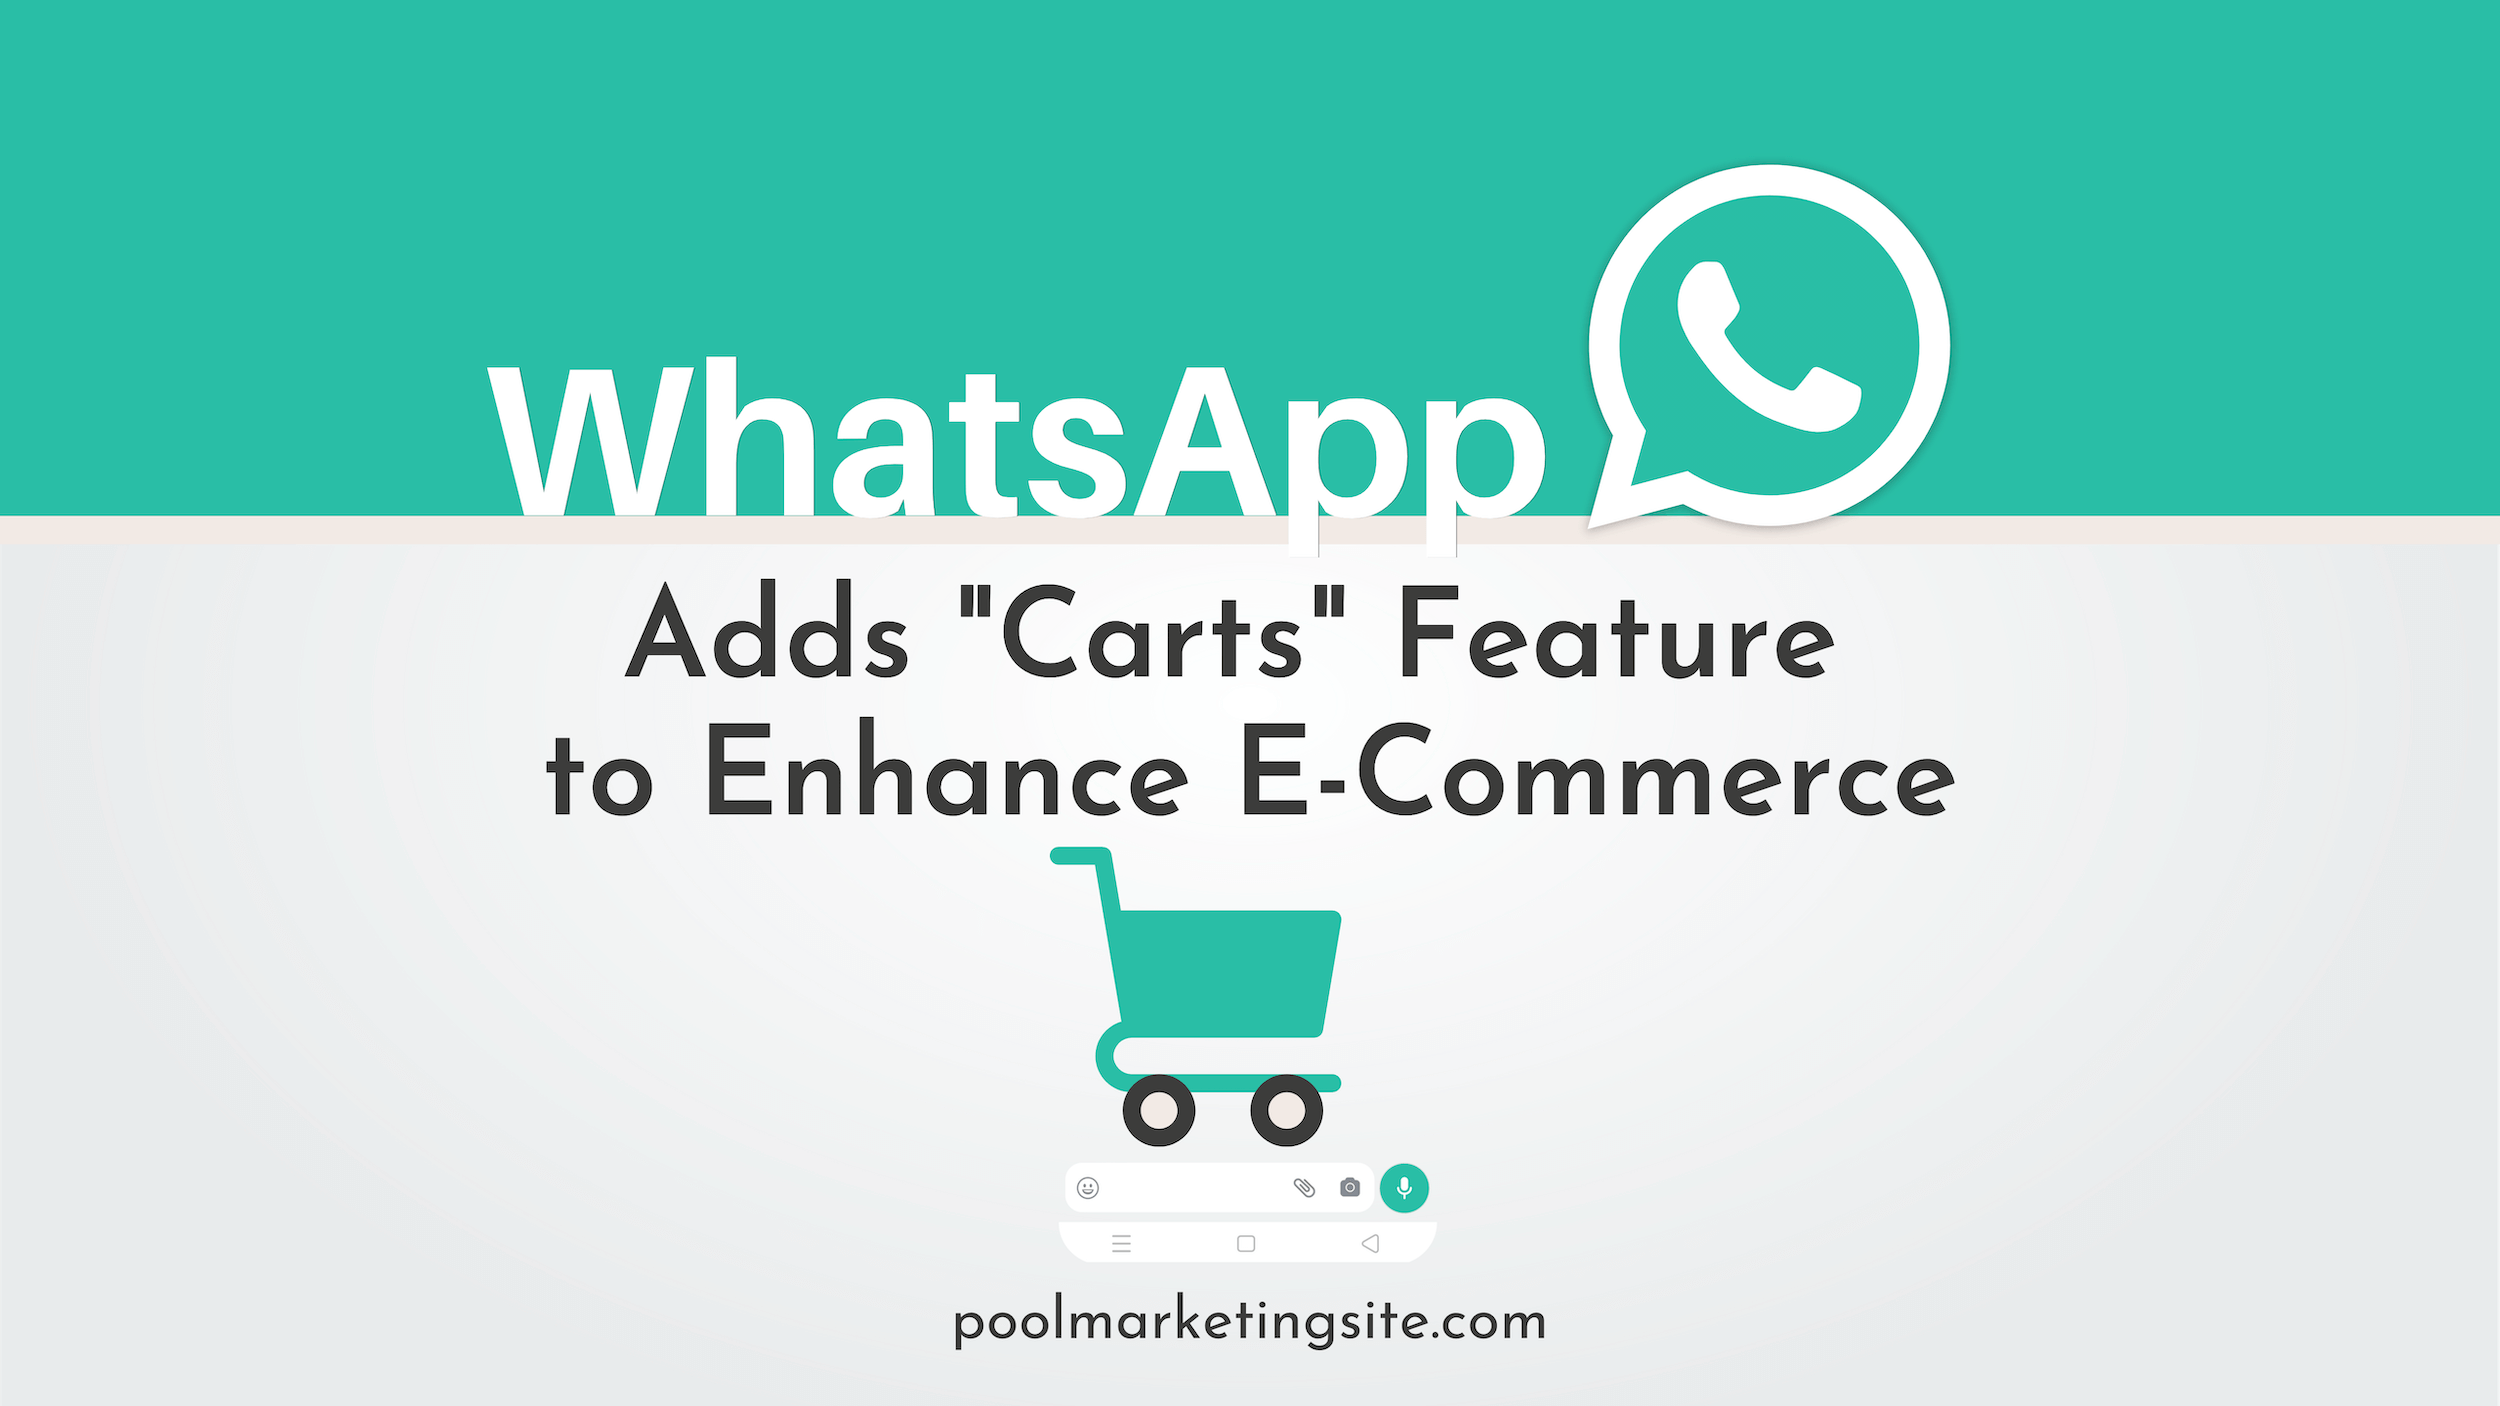 WhatsApp Adds 'Carts' Feature to Enhance E-Commerce